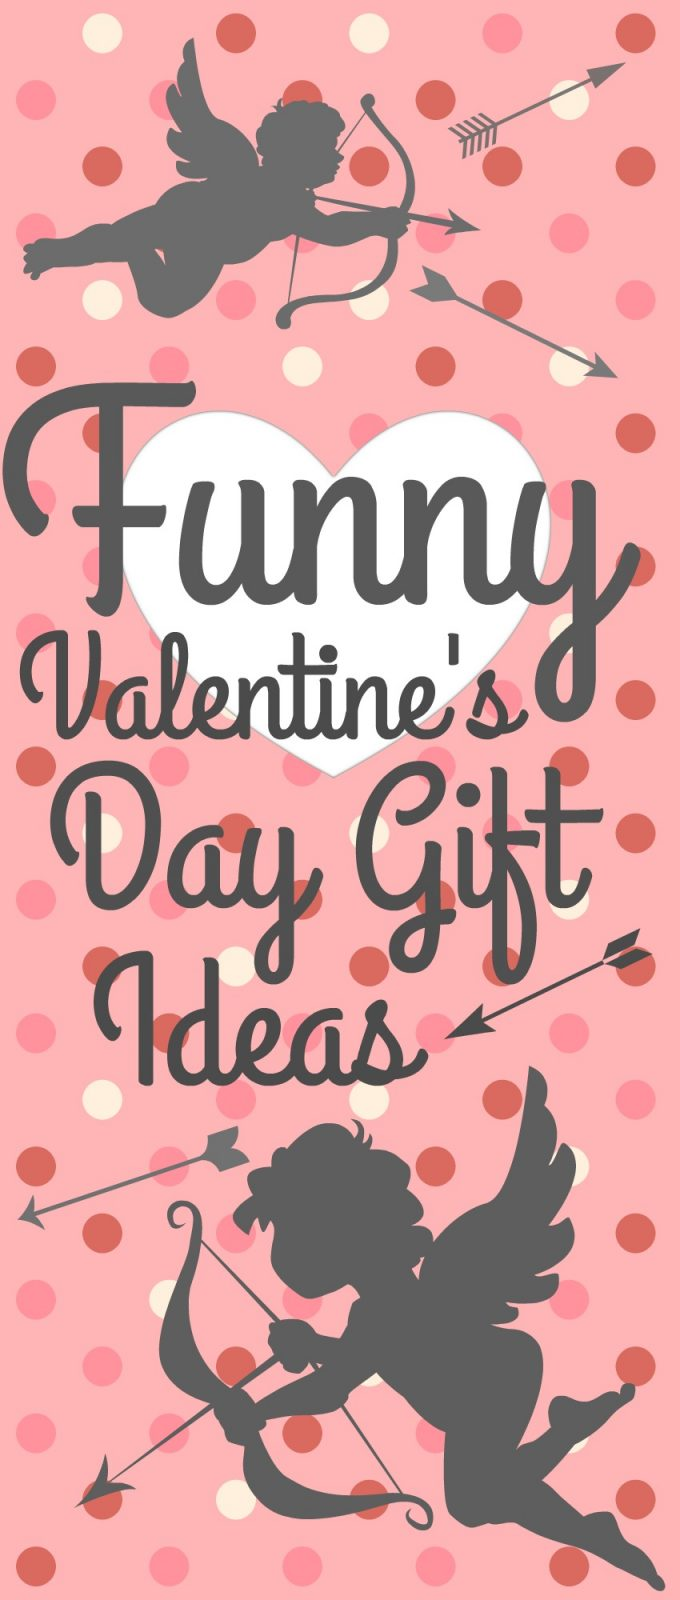 funny valentine's day gifts, Ideas